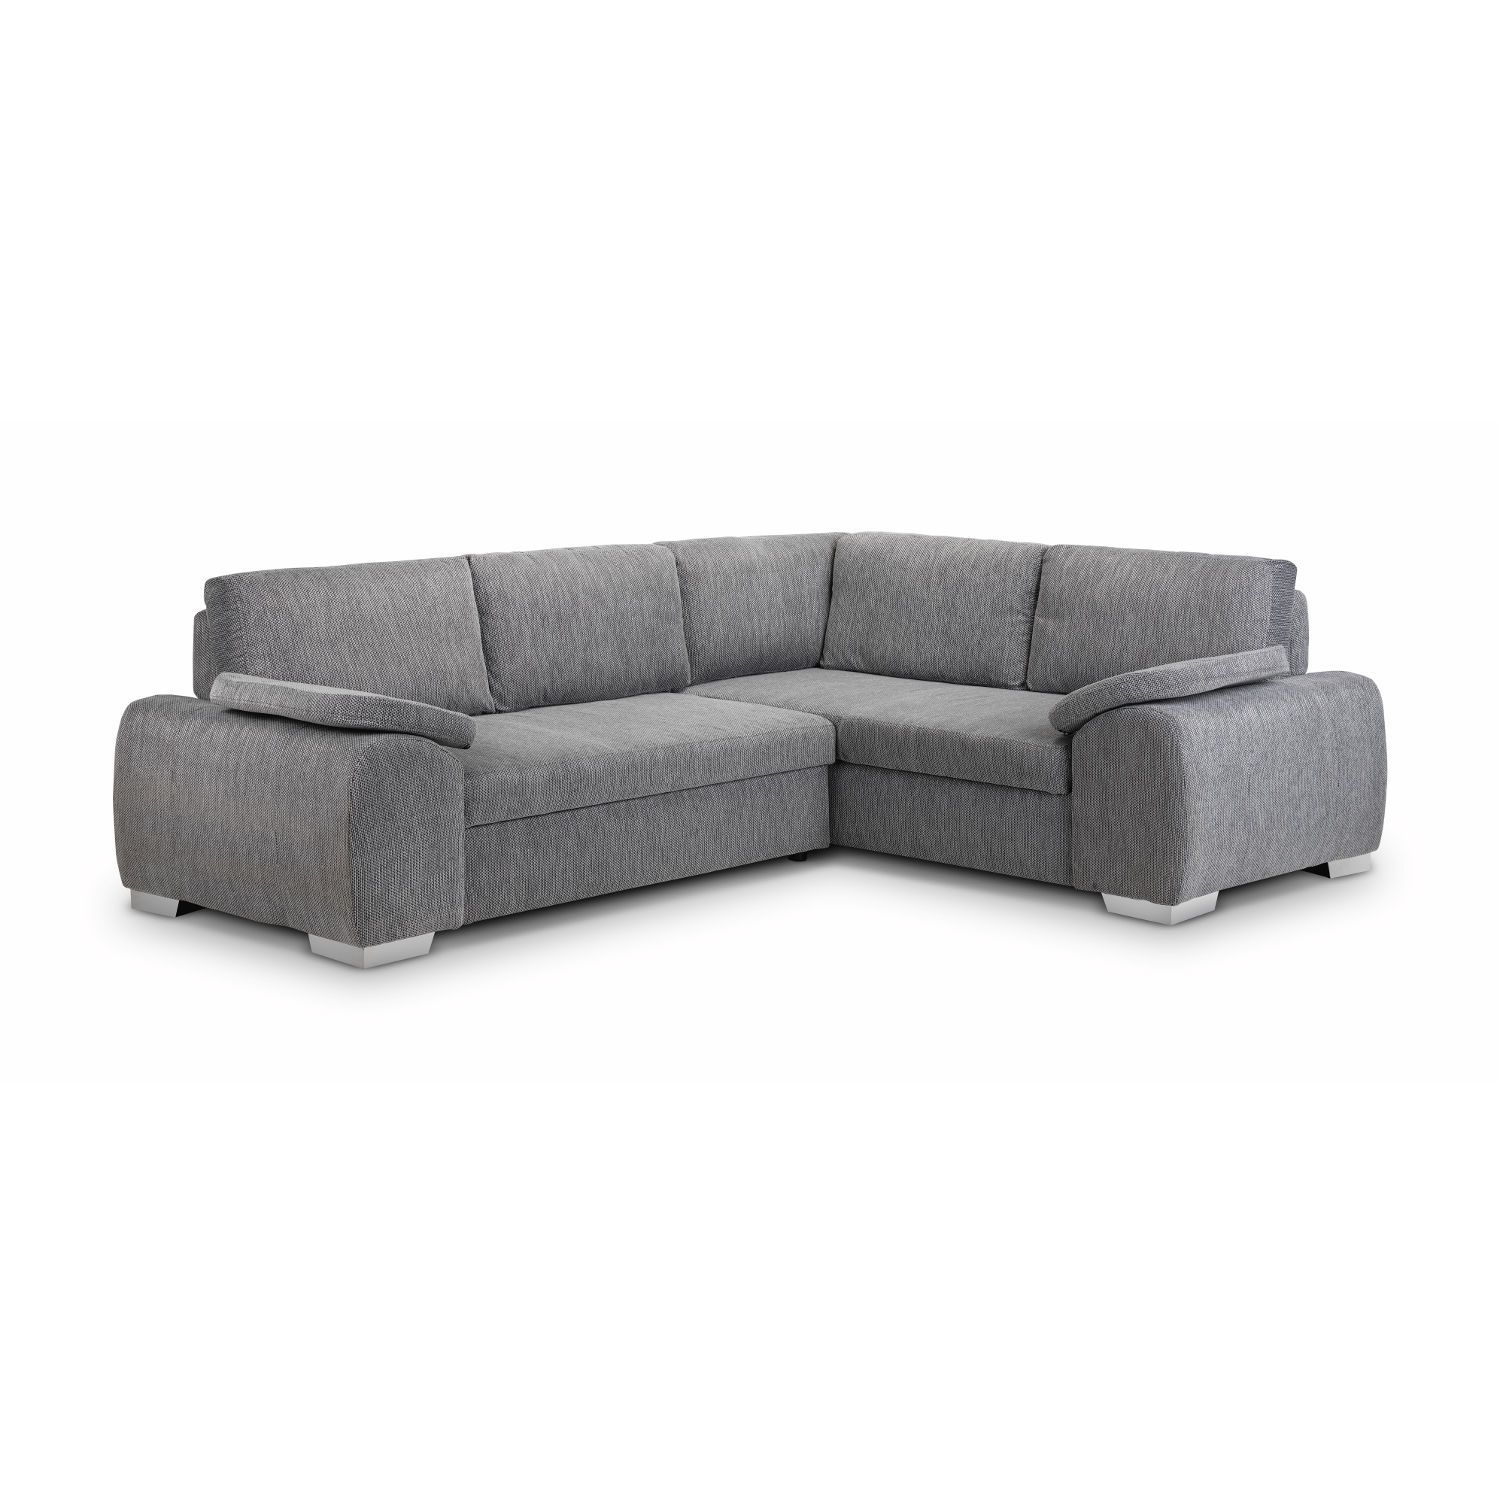 Enzo Corner Sofa Bed With Storage Fabric Next Day Delivery Enzo Corner Sofa Bed With Storage Fabric